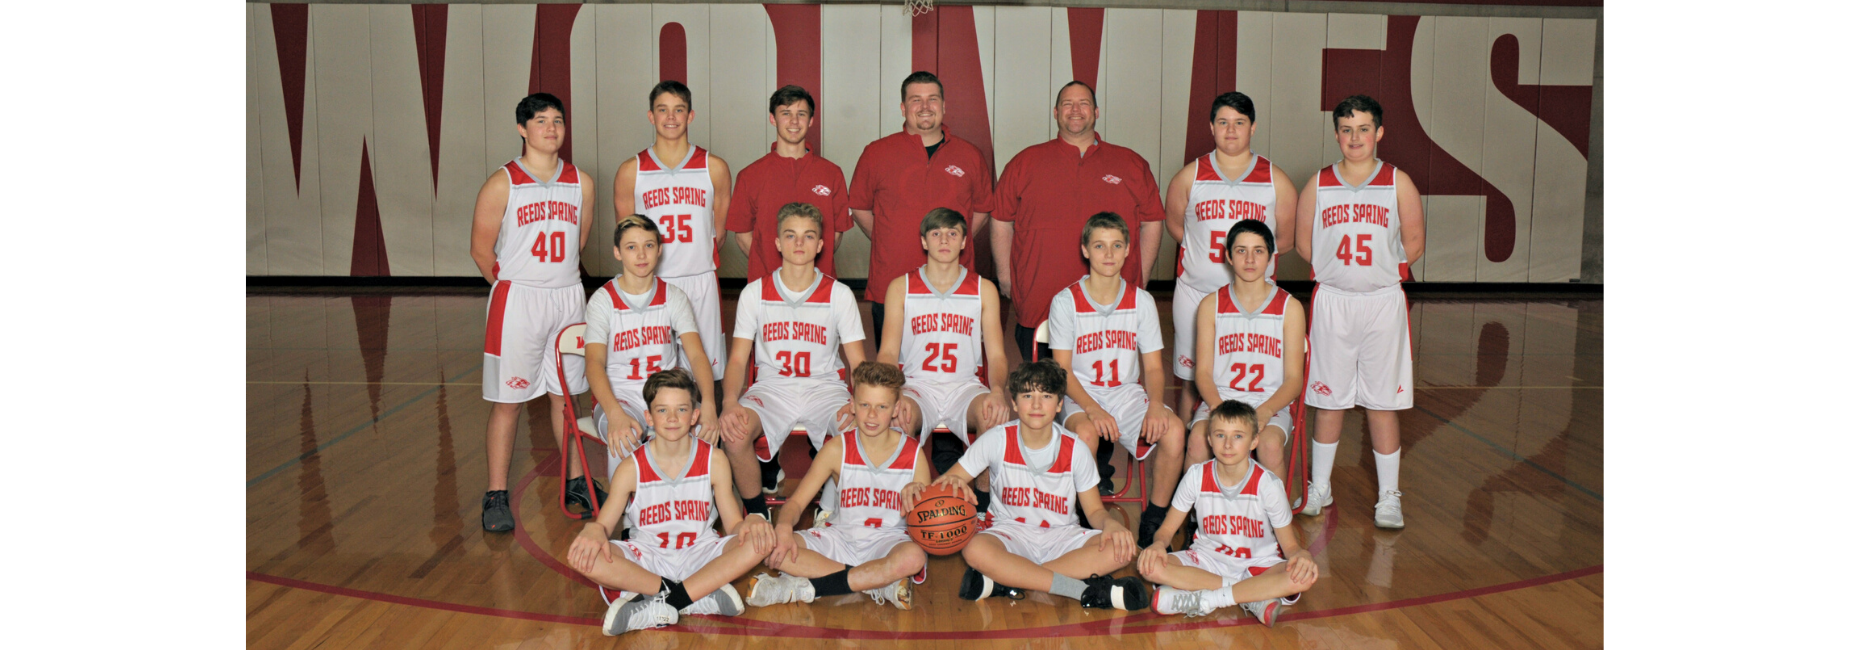 8th grade boys basketball